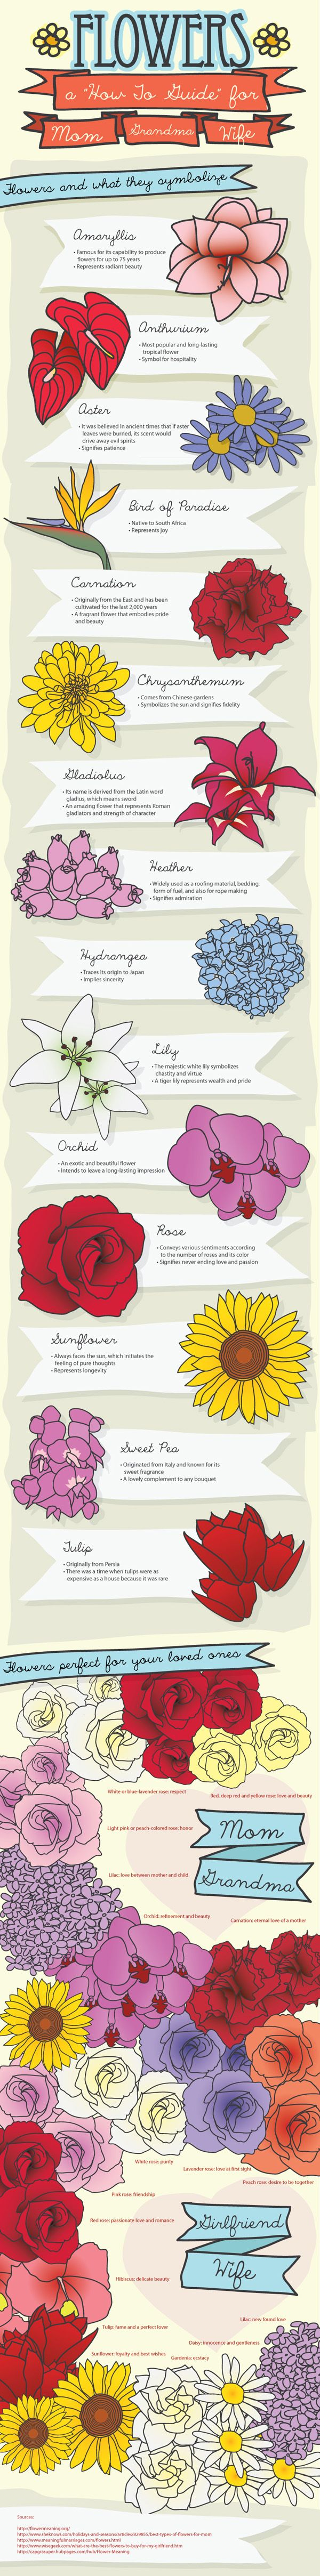 Flowers and what they symbolize flower charts pinterest flowers choosing the right flower for the right occasion izmirmasajfo